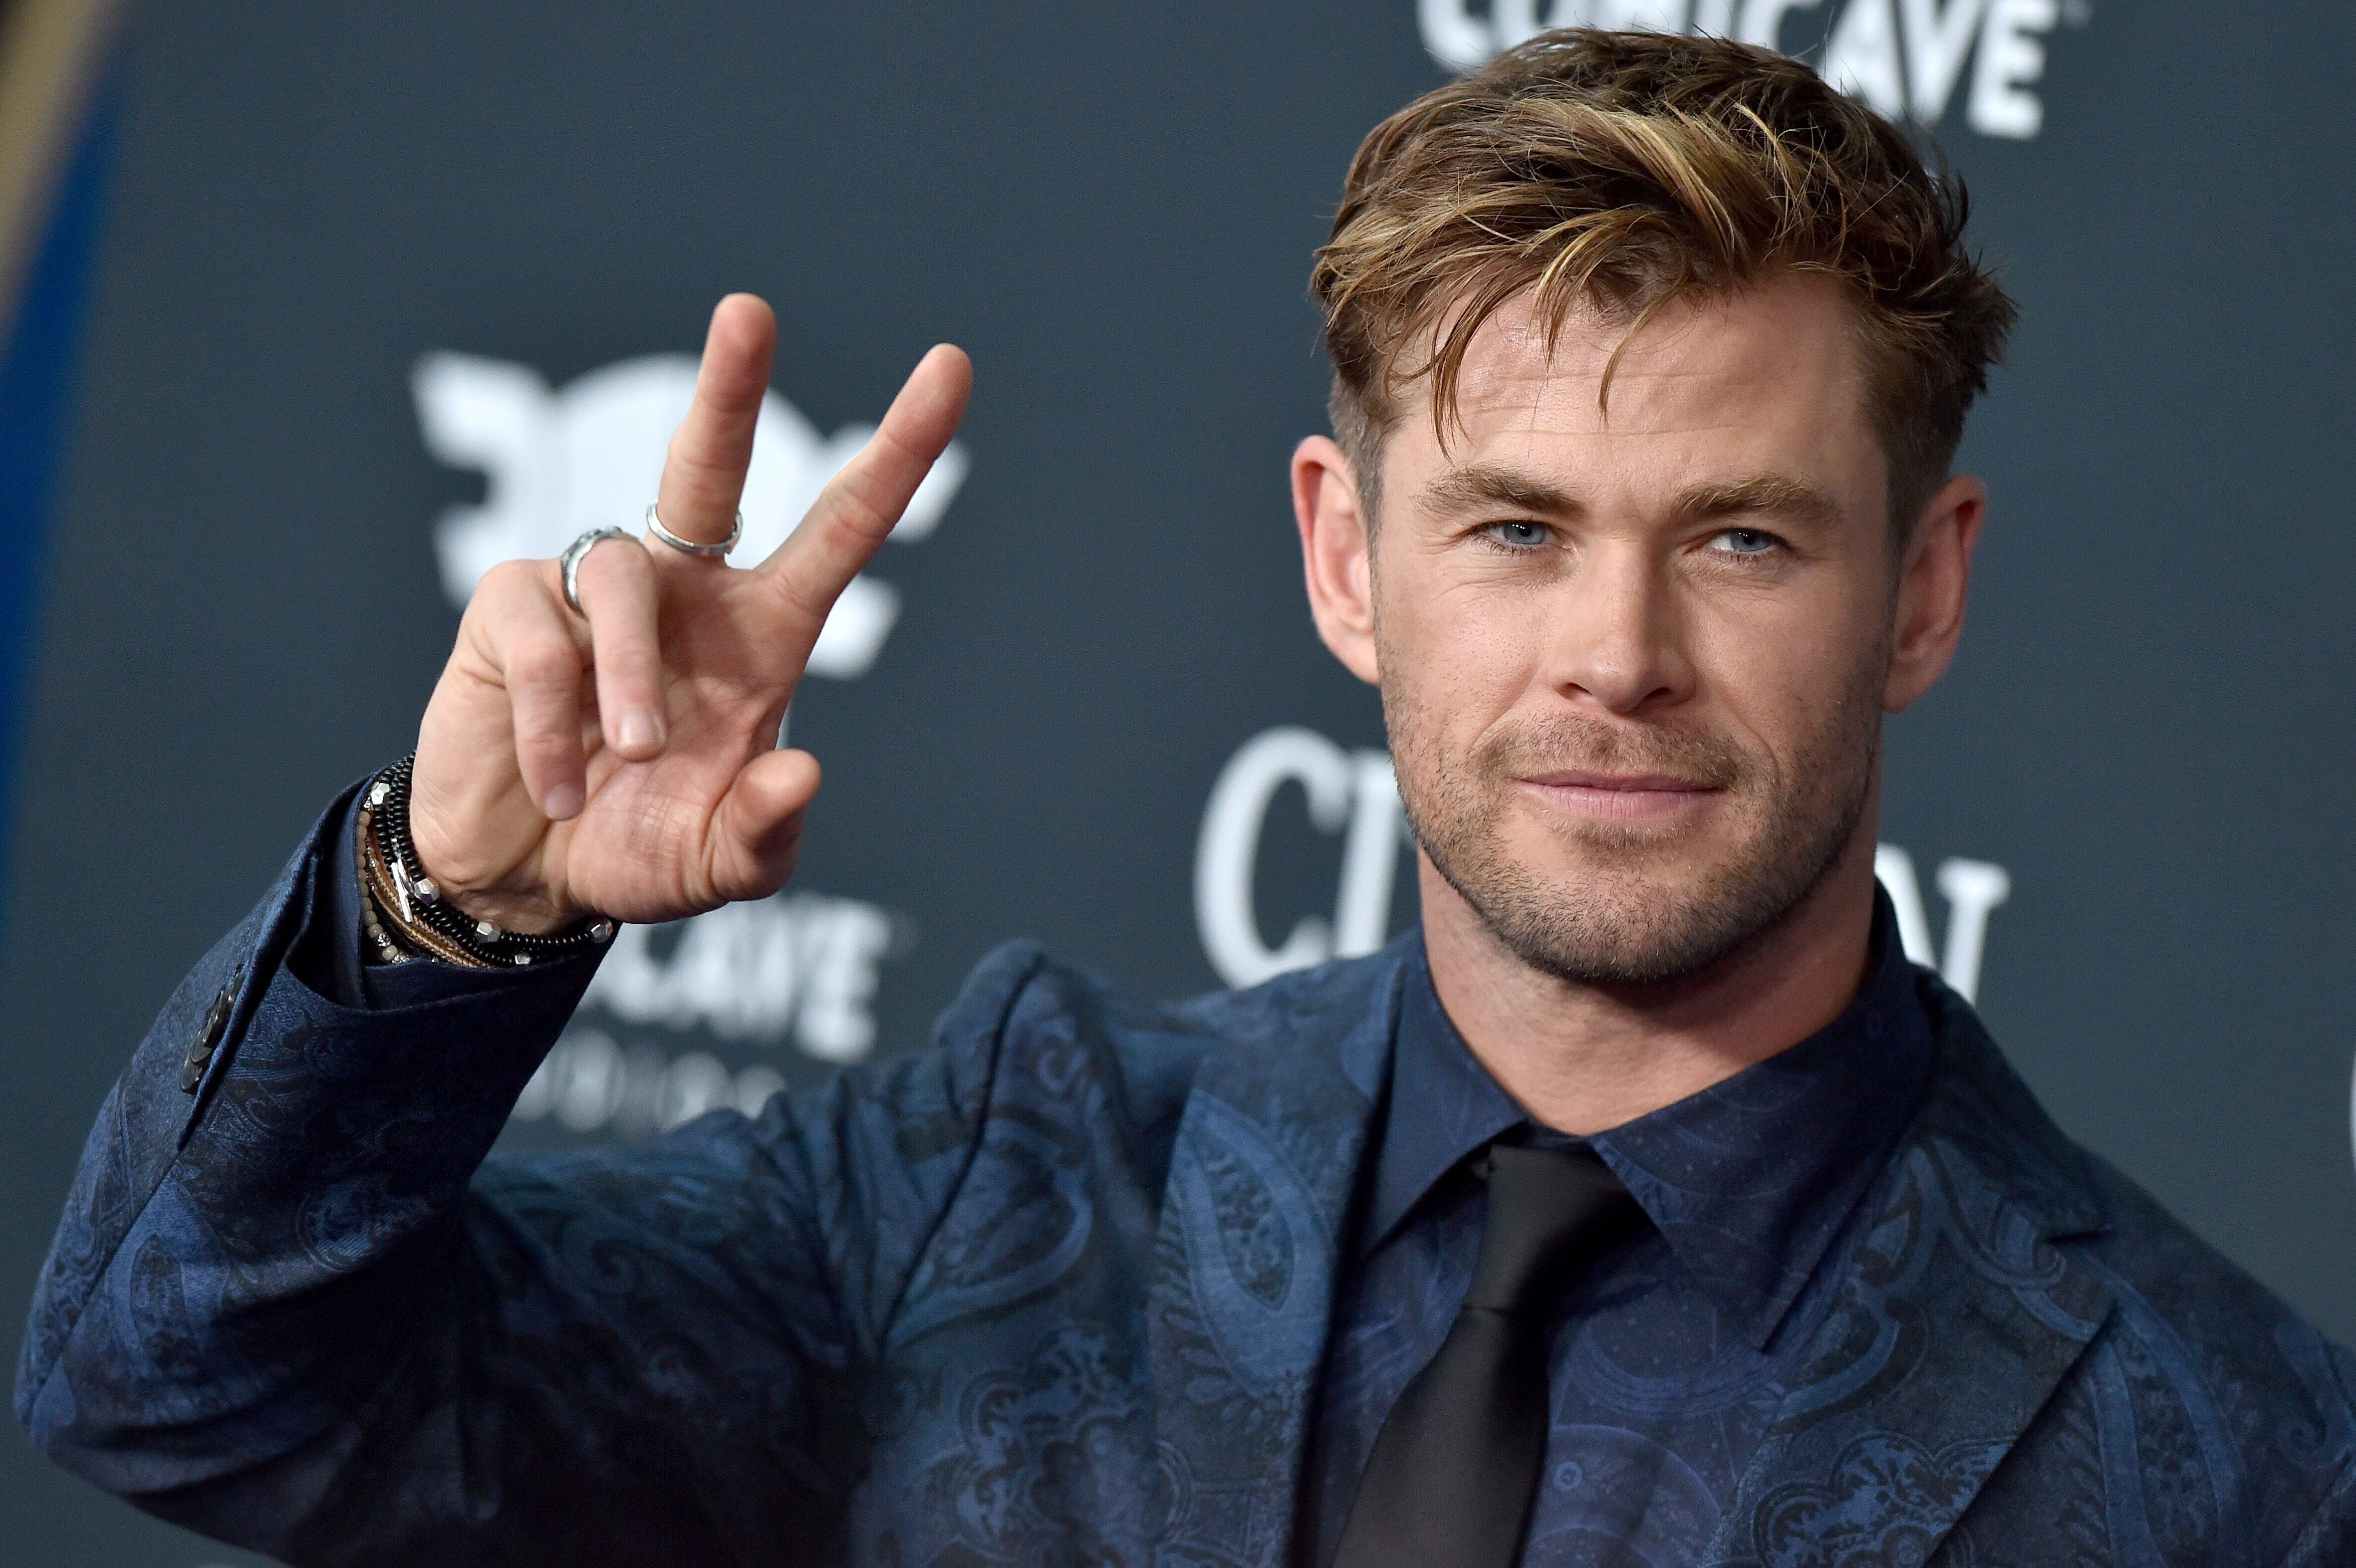 LOS ANGELES, CALIFORNIA - APRIL 22: Chris Hemsworth attends the World Premiere of Walt Disney Studios Motion Pictures 'Avengers: Endgame' at Los Angeles Convention Center on April 22, 2019 in Los Angeles, California. (Photo by Axelle/Bauer-Griffin/FilmMagic)